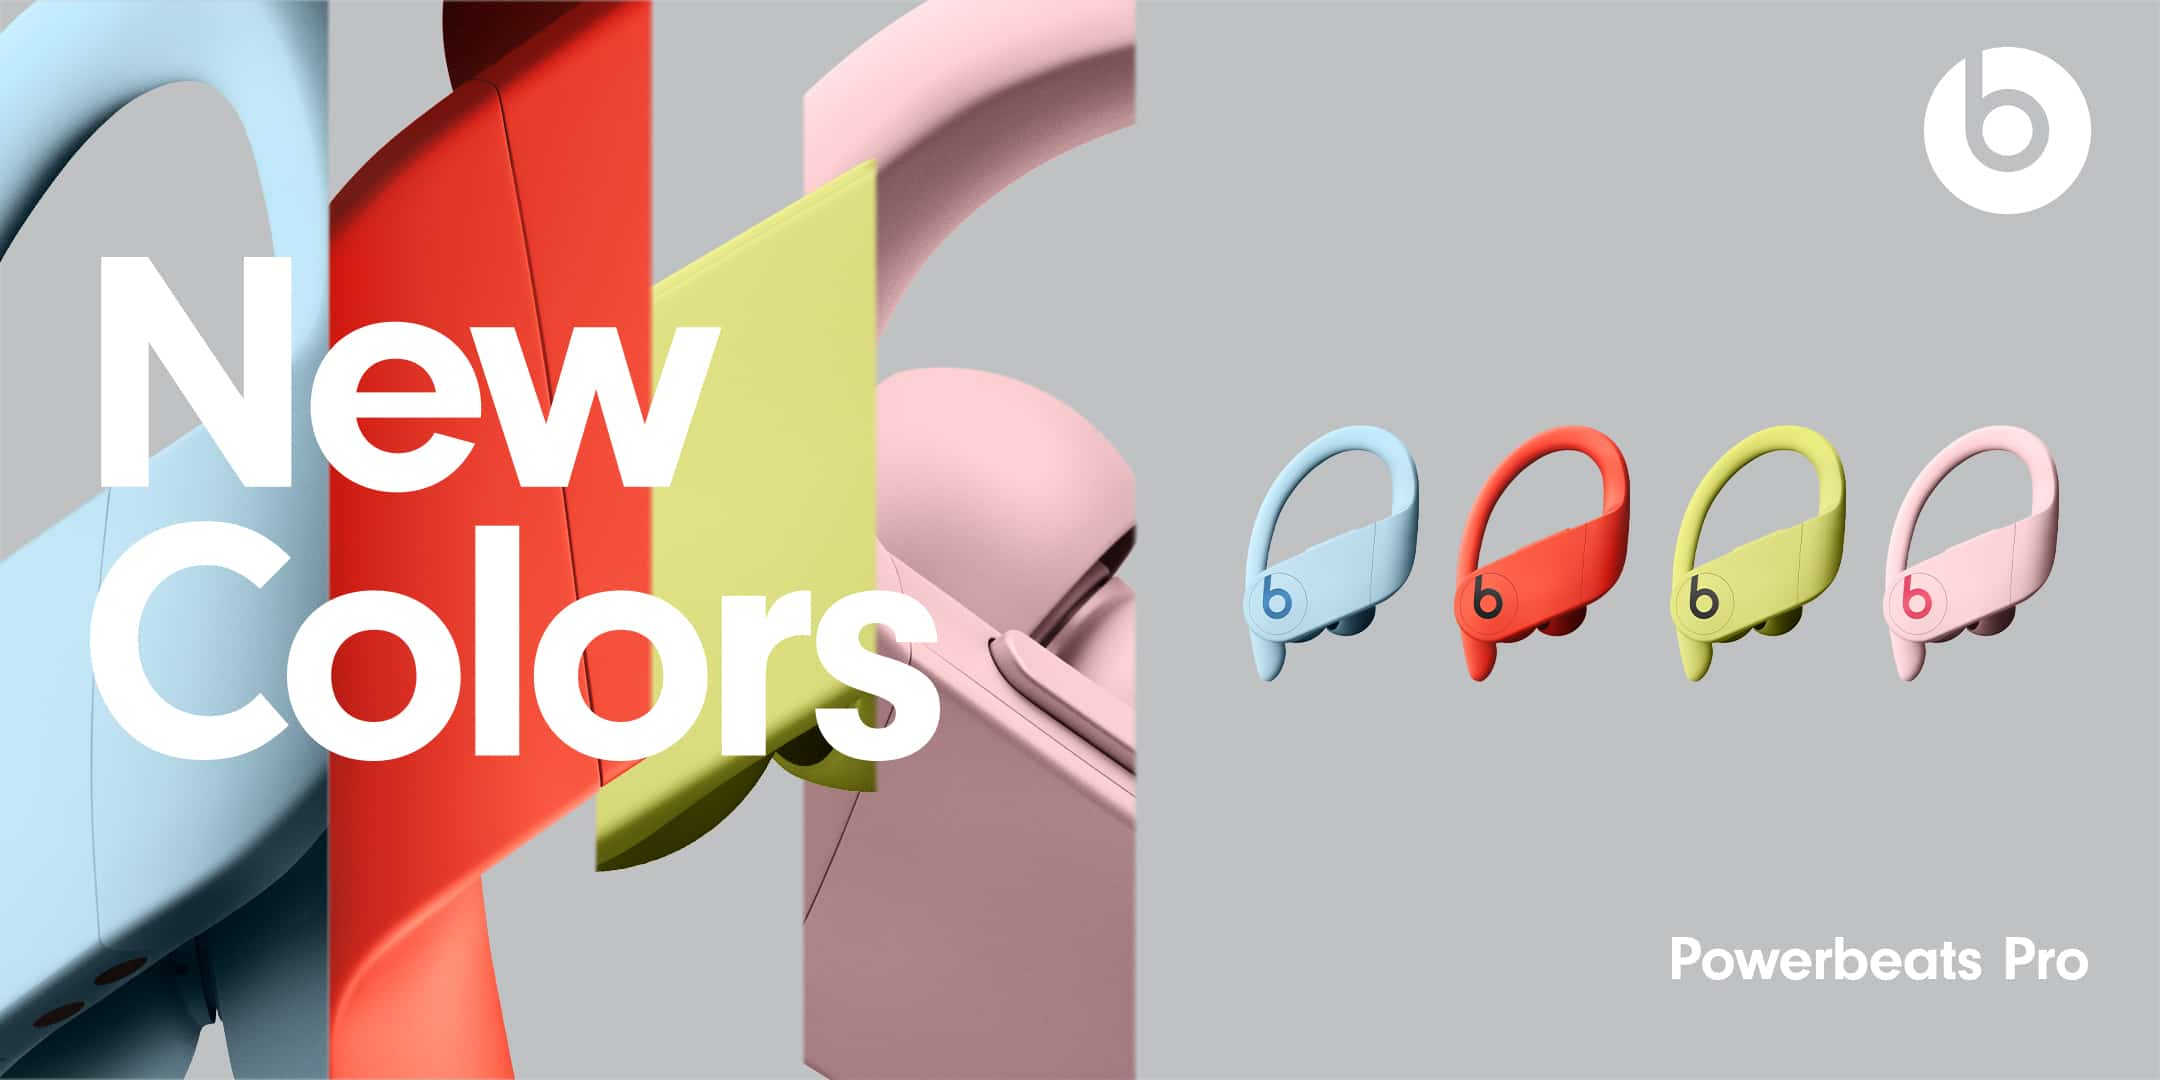 Powerbeats Pro is now available in 4 new, bright colors 14